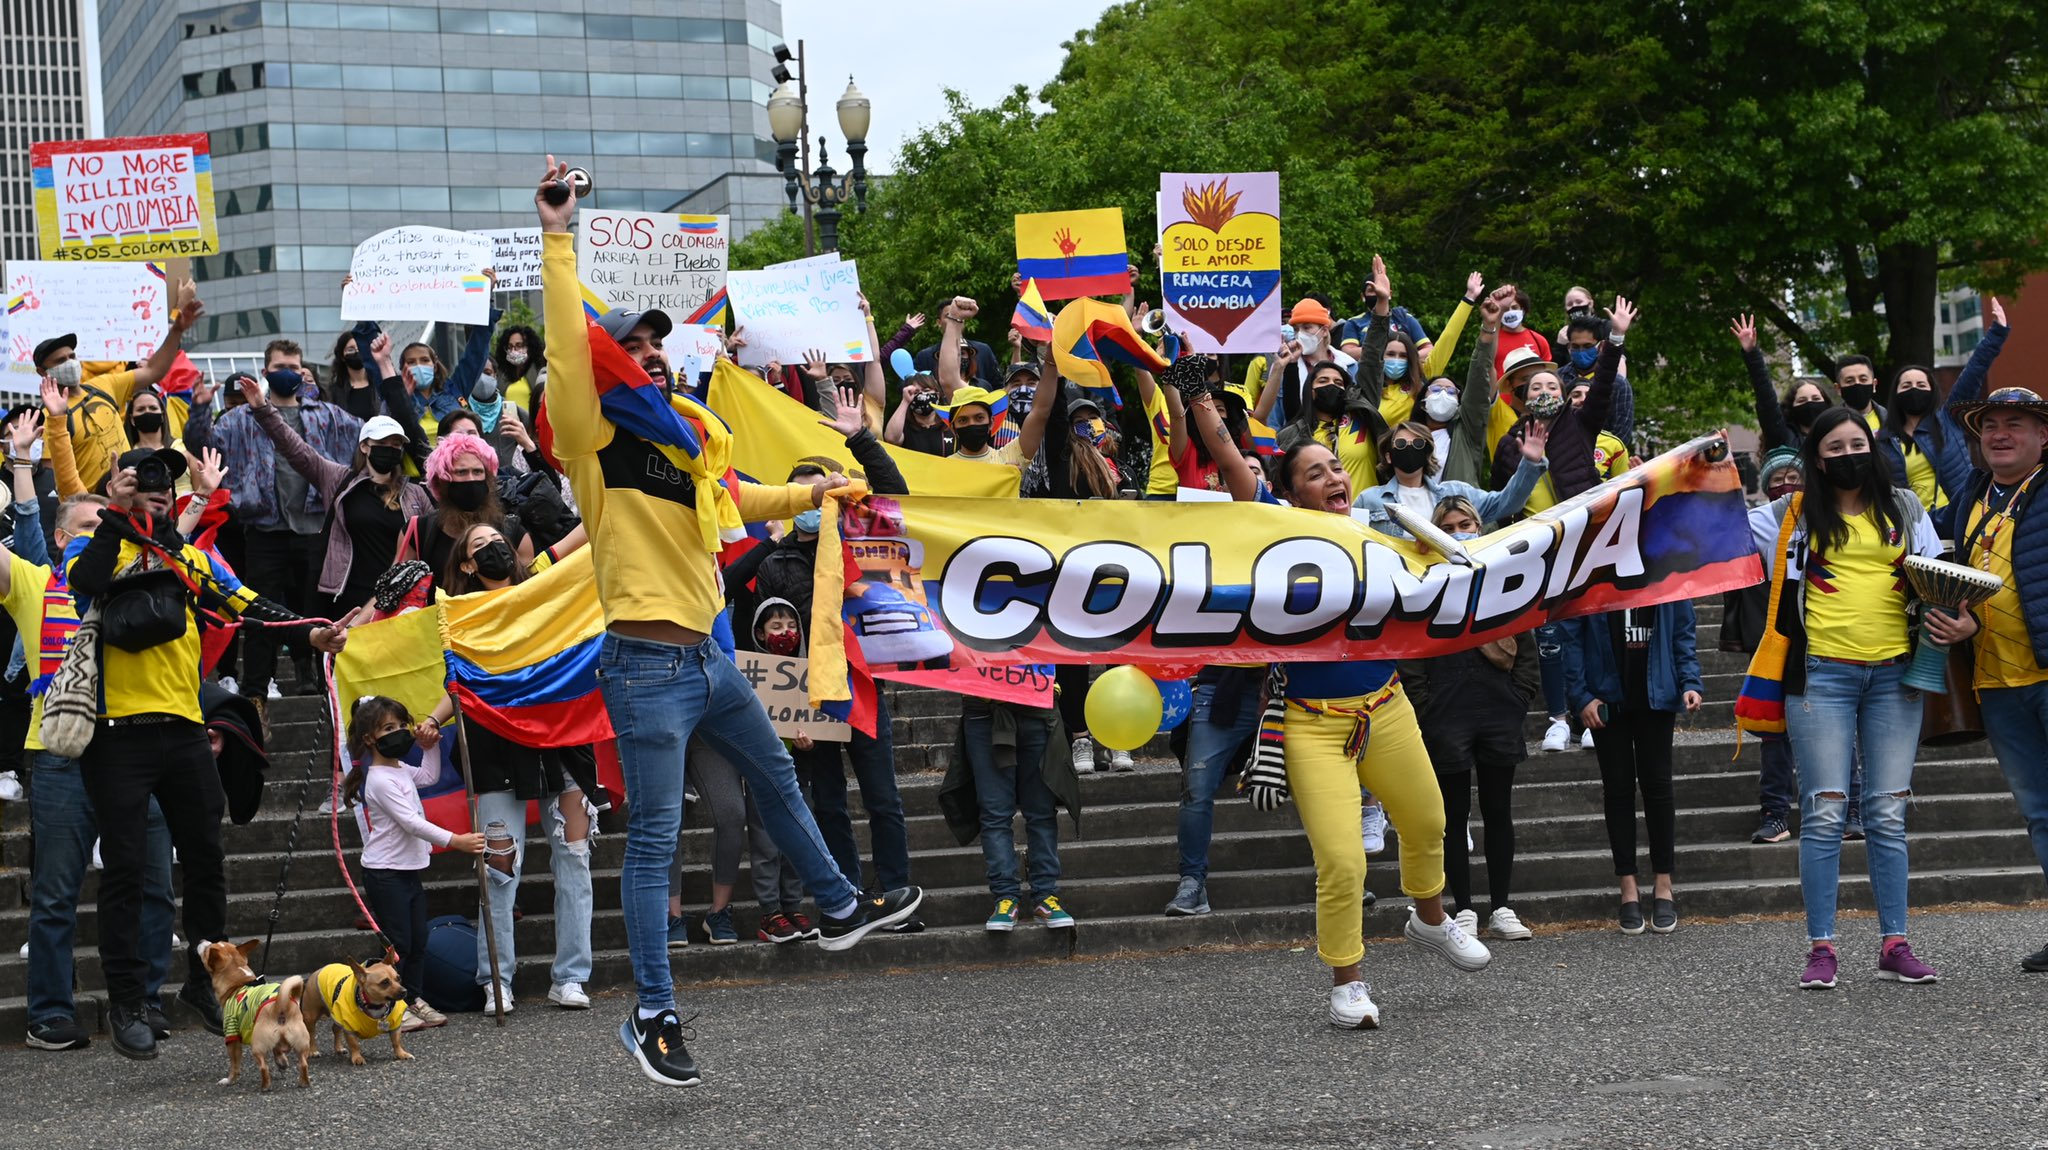 150 Portland Protesters March in Solidarity With Uprising in Colombia